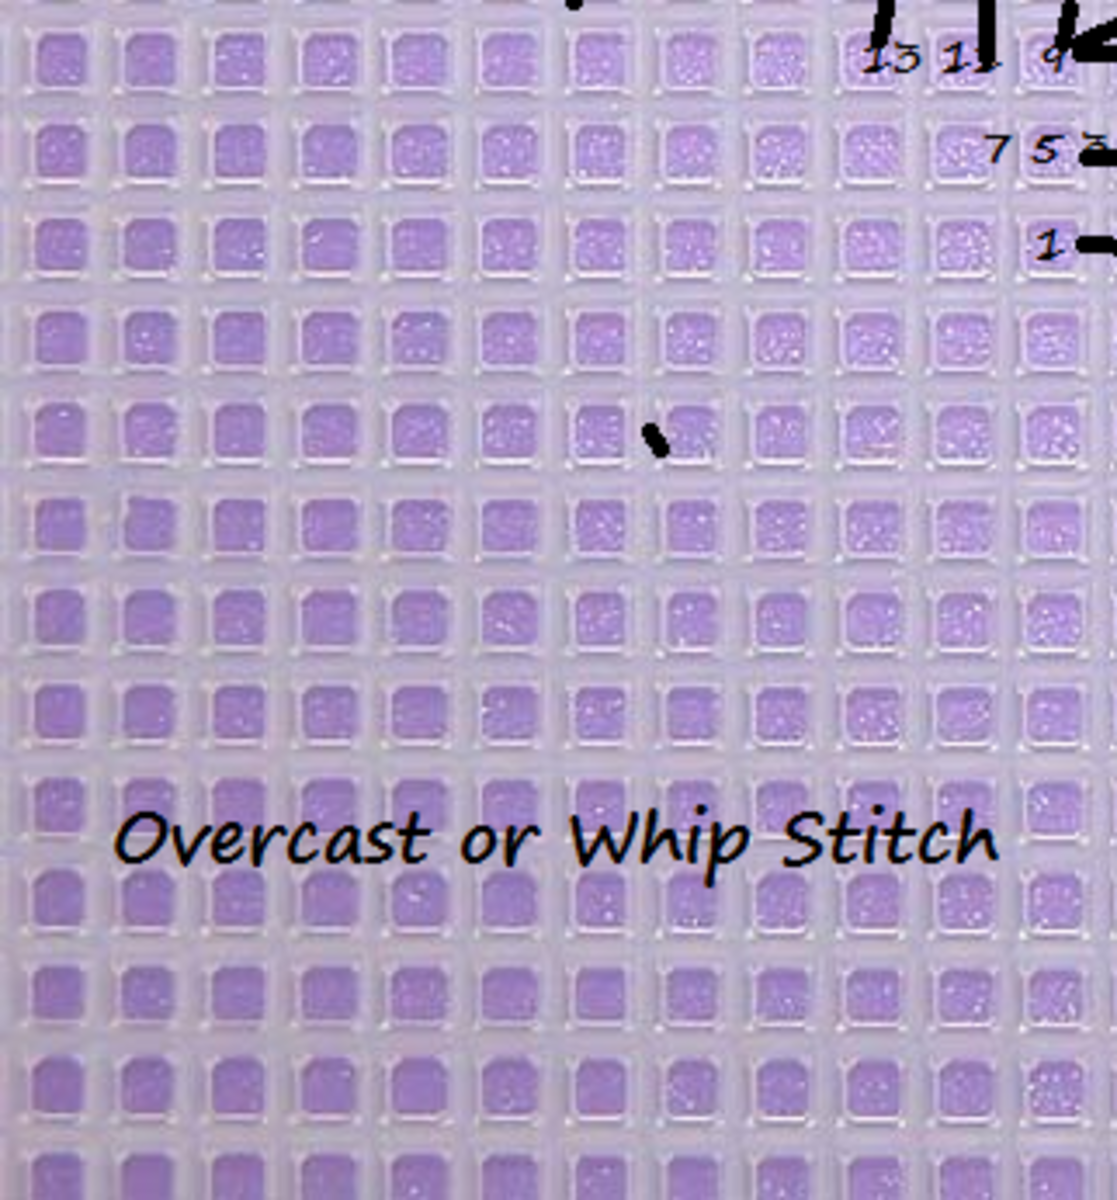 Overcast or Whip Stitch